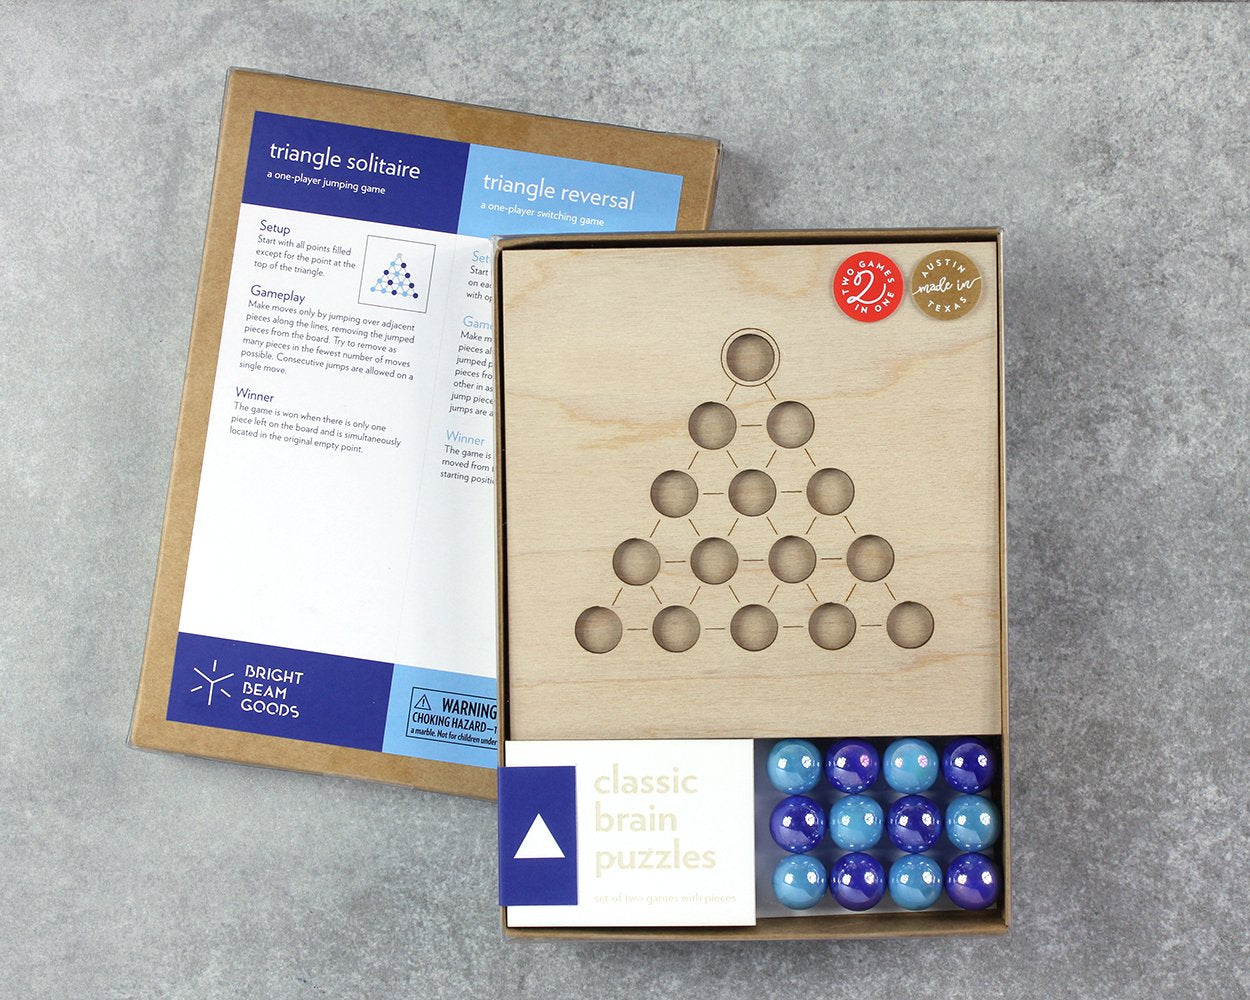 Triangle marble game in packaging